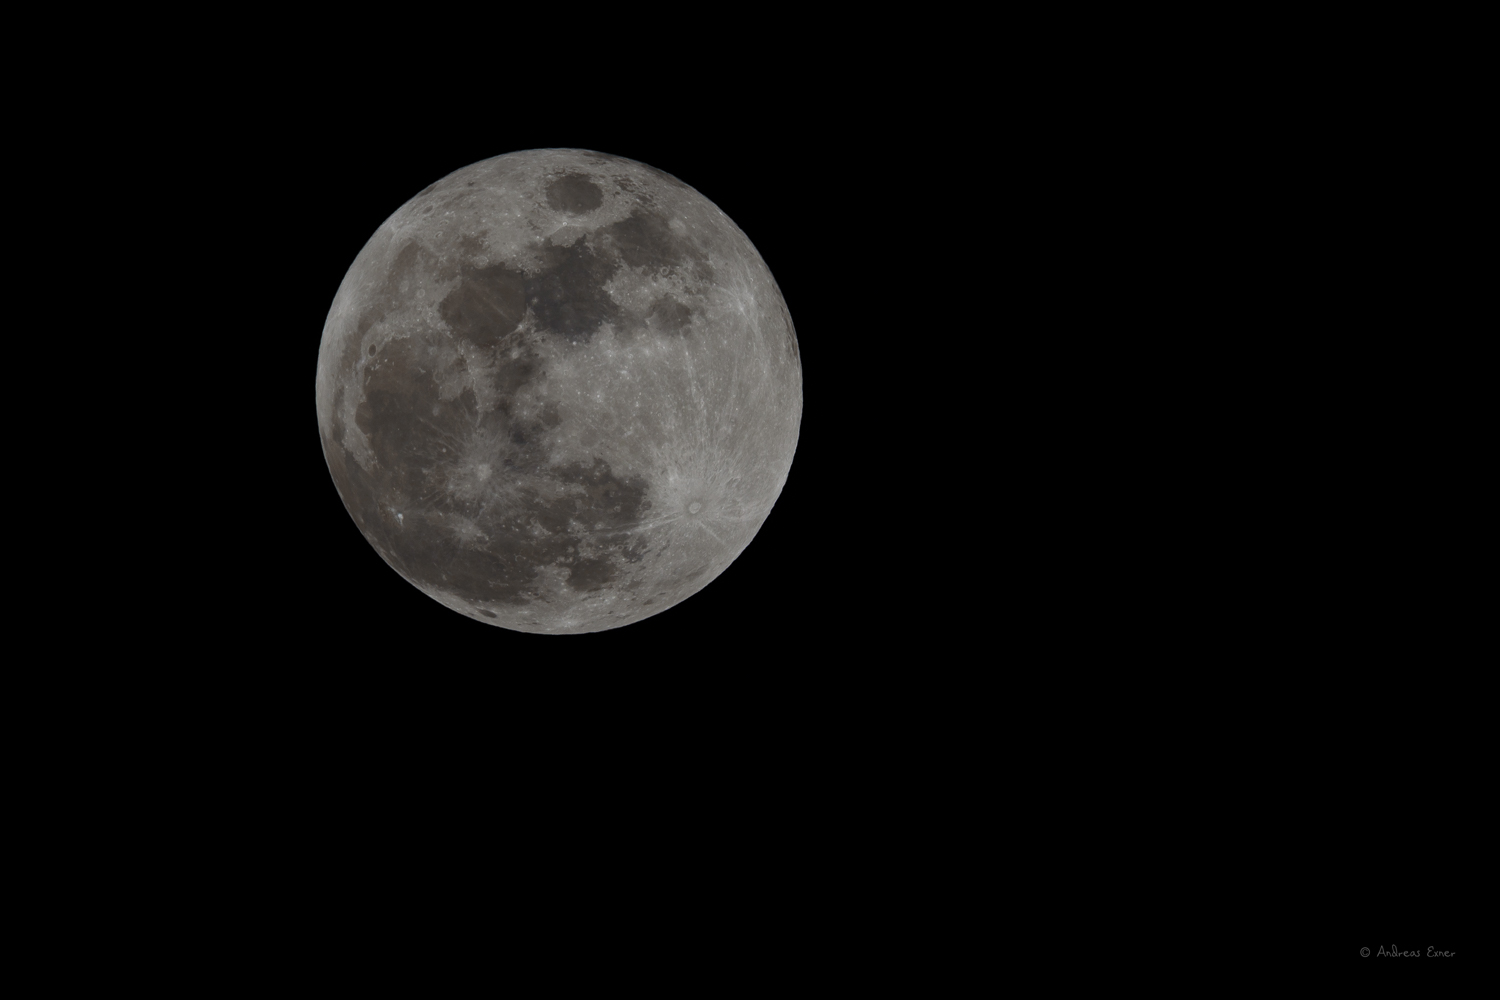 1/160 s, f/11, ISO 100, 850 mm (1275 mm DX mode)  -----------